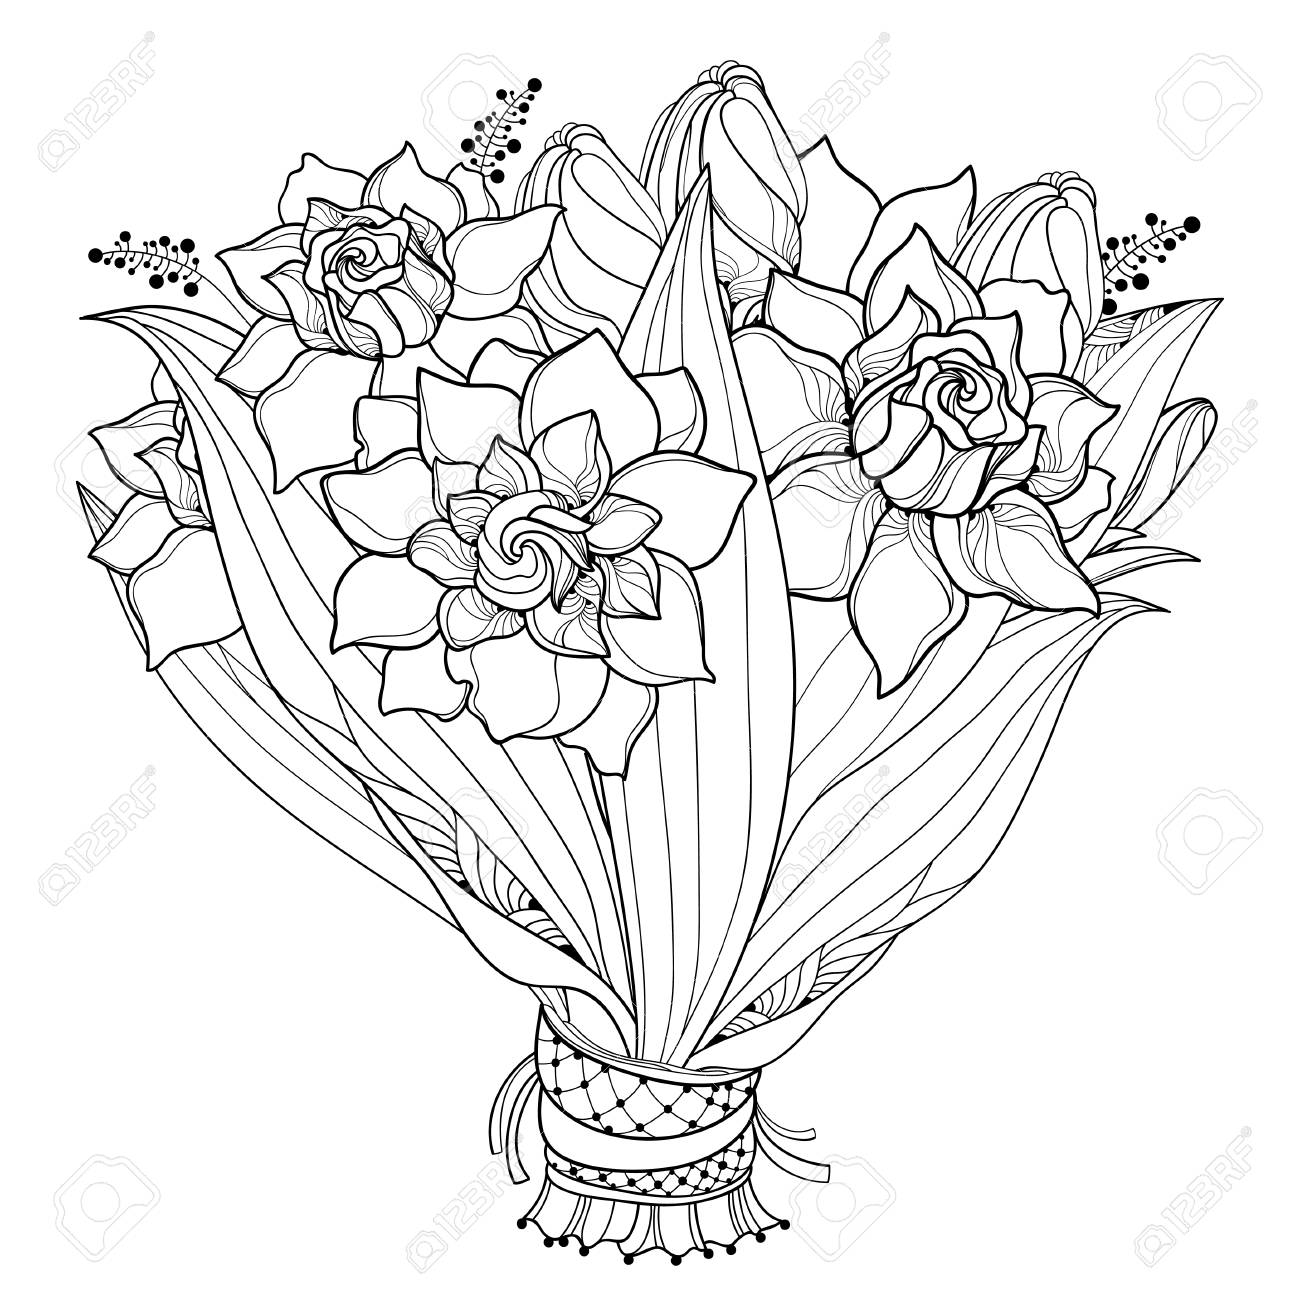 Bride Bouquet With Outline Gardenia Flower Bud And Ornate Leaf